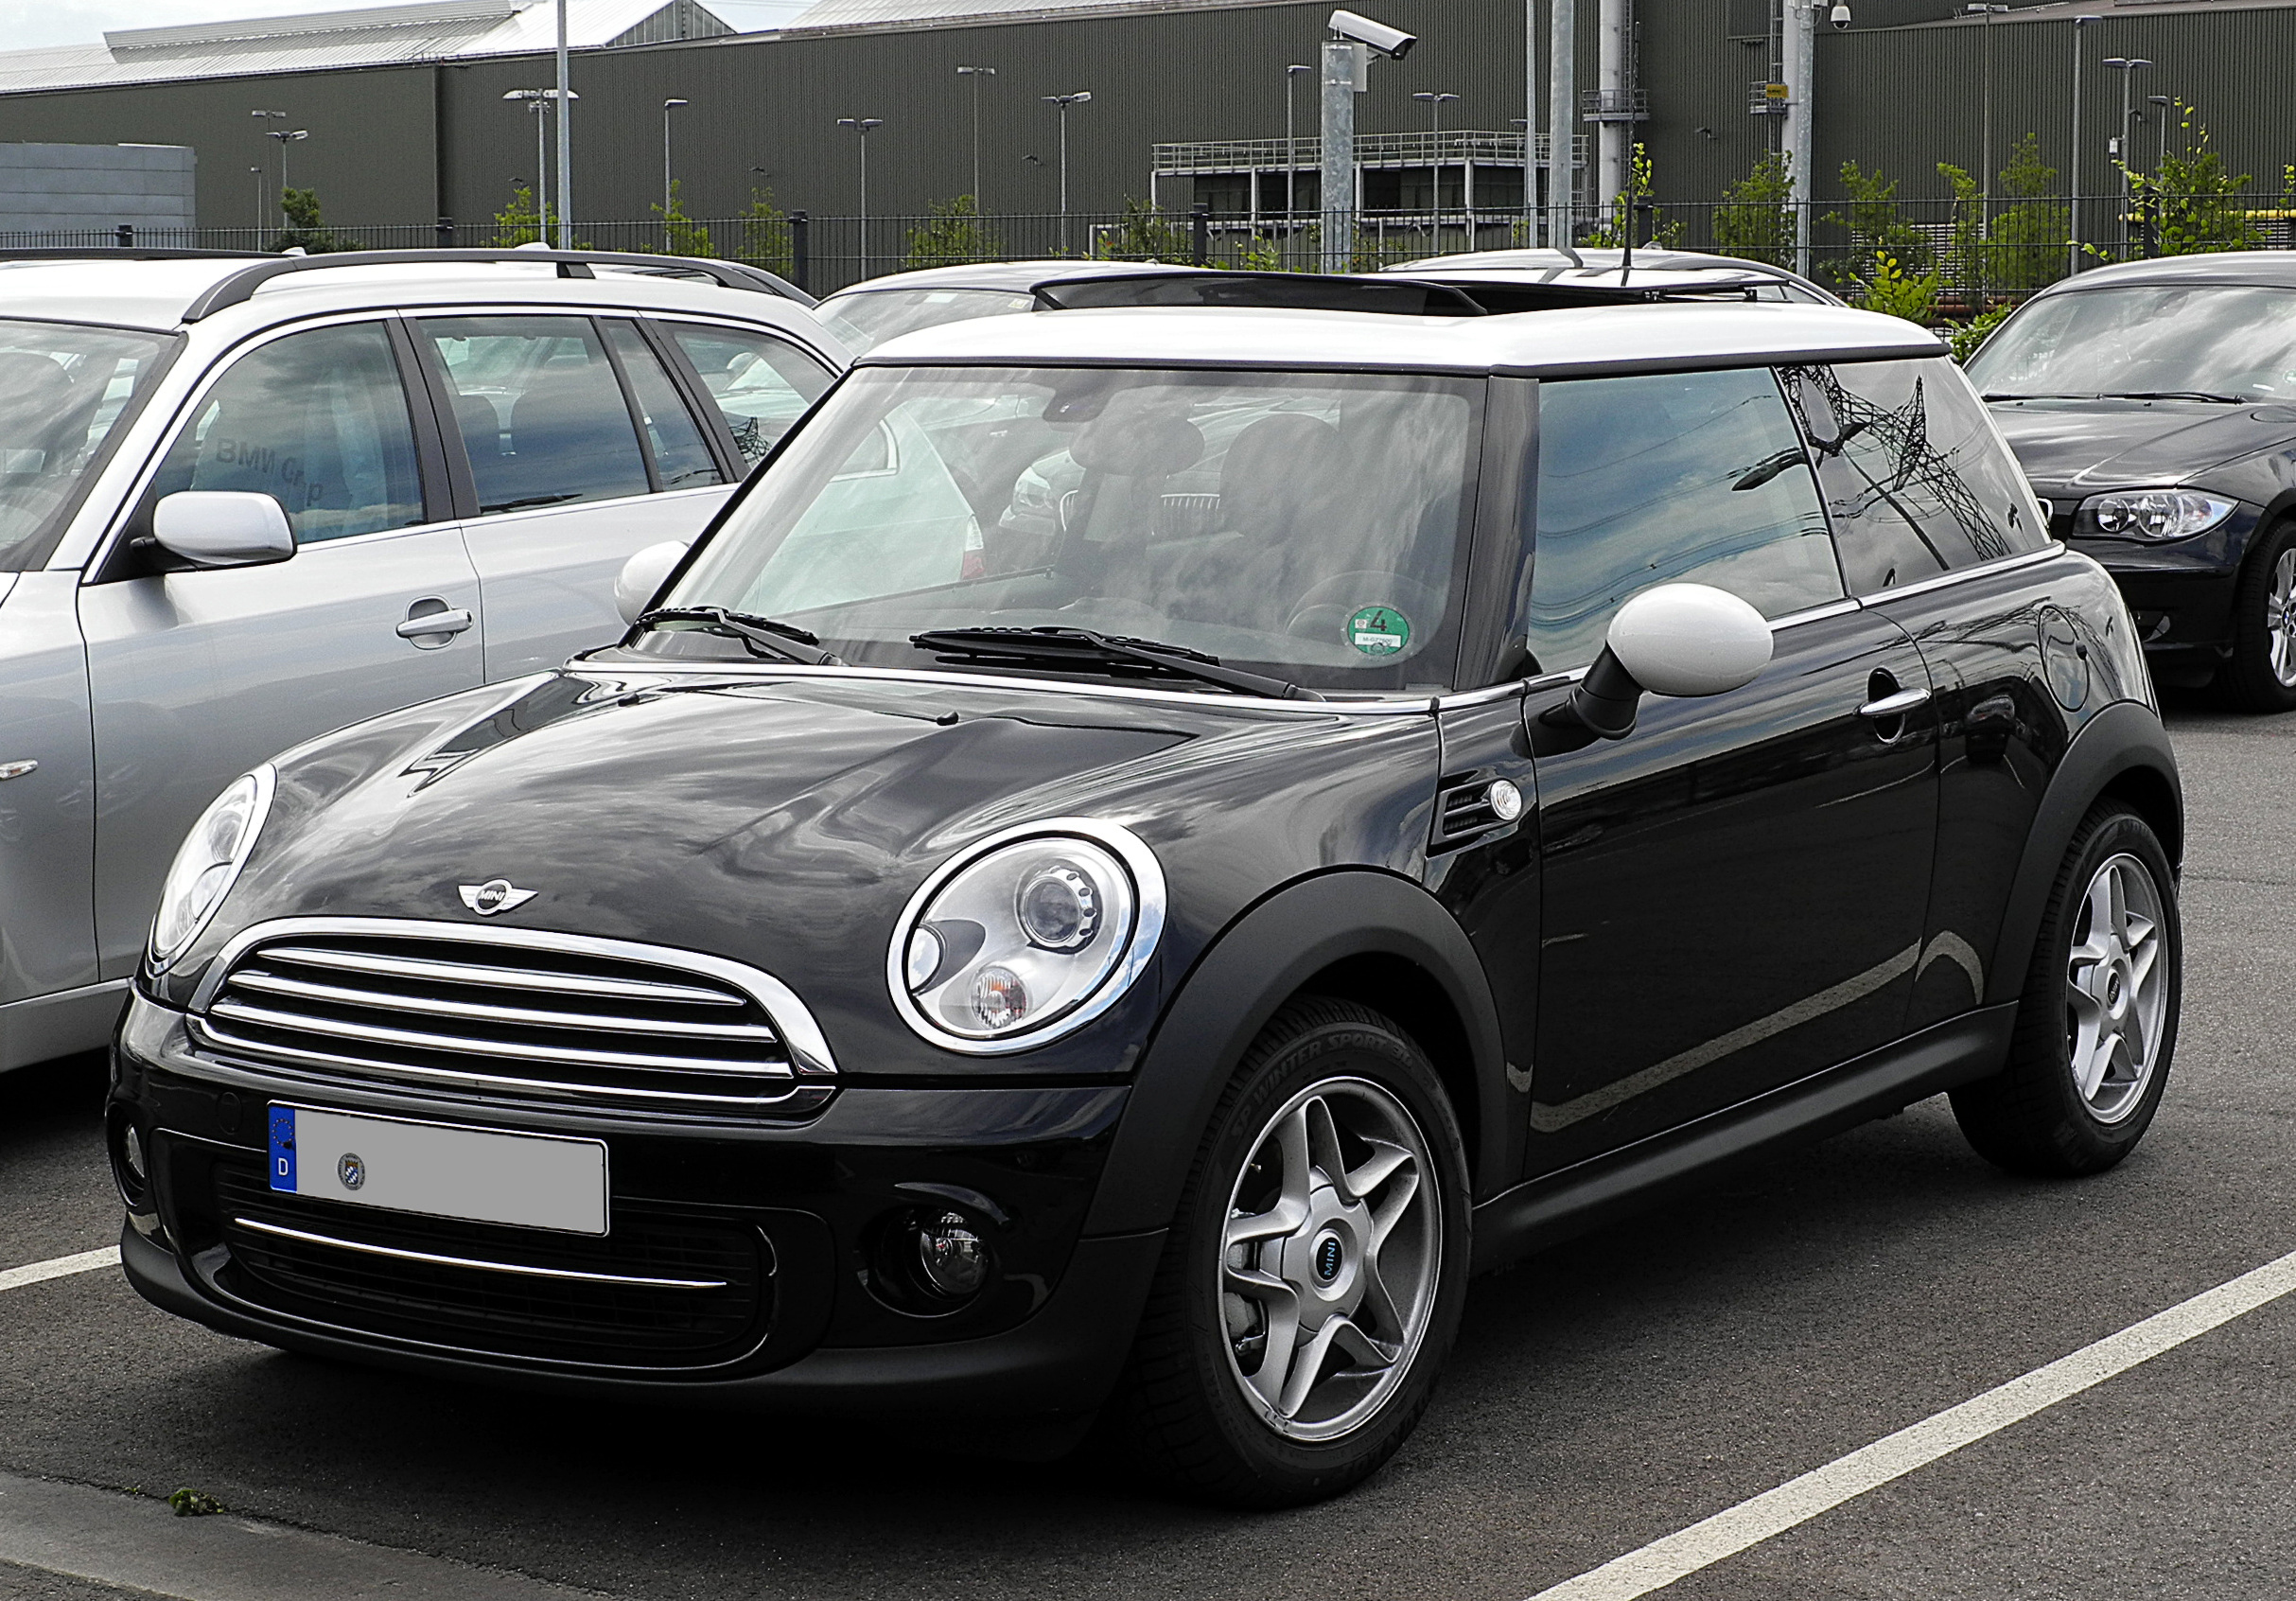 file mini cooper r56 facelift frontansicht 1 17 juli 2011 d wikipedia. Black Bedroom Furniture Sets. Home Design Ideas